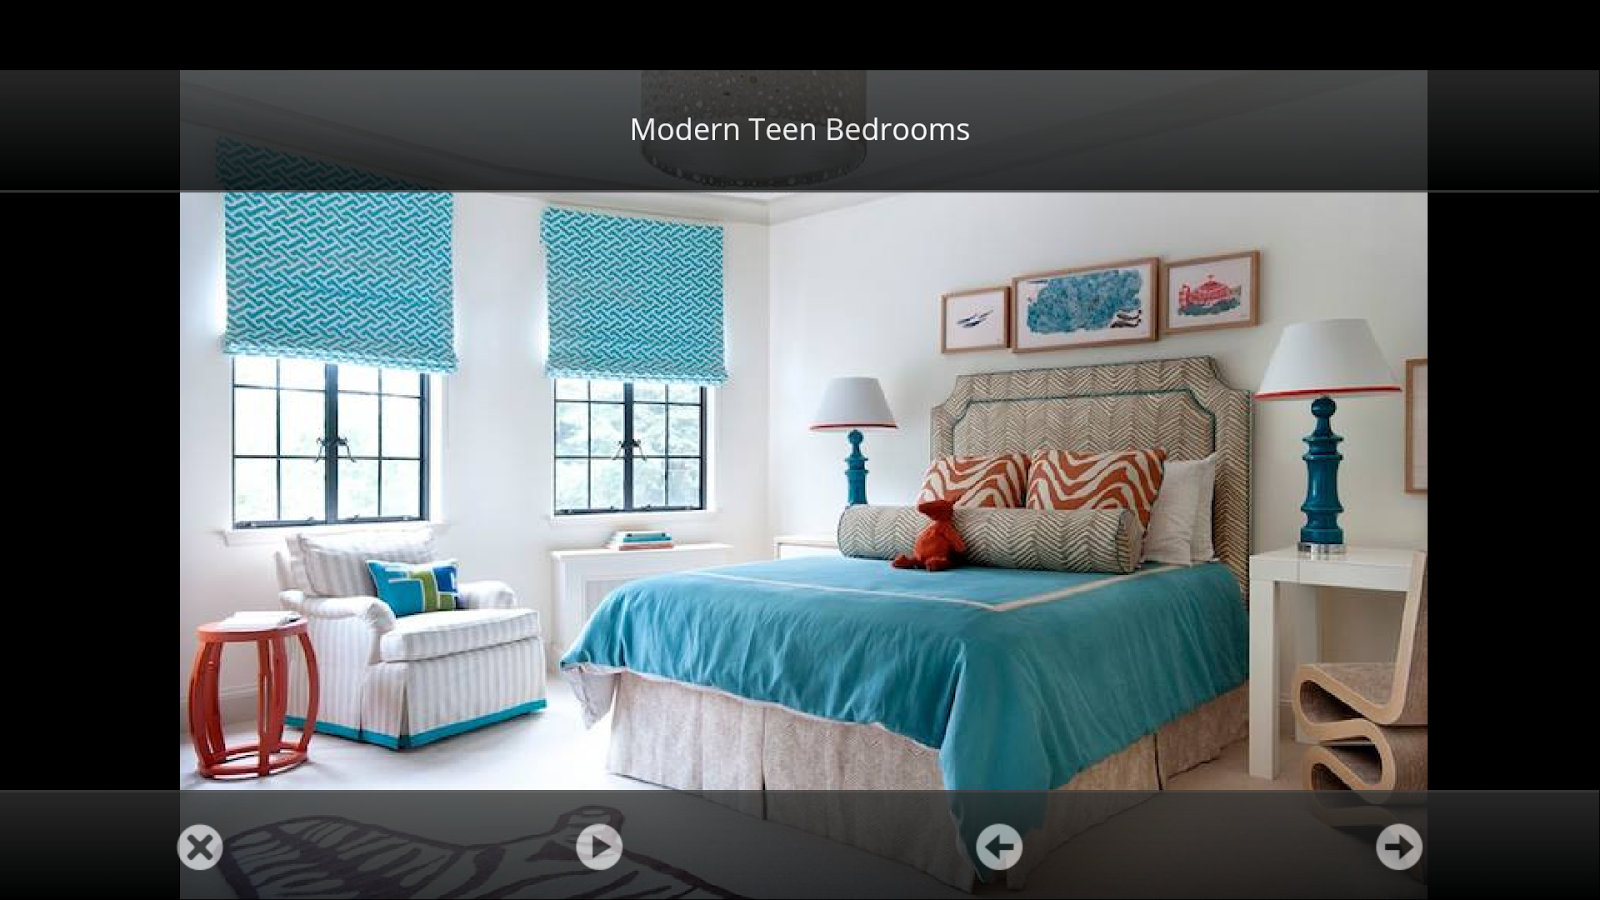 Bedroom decorating ideas android apps on google play for Bedroom design app